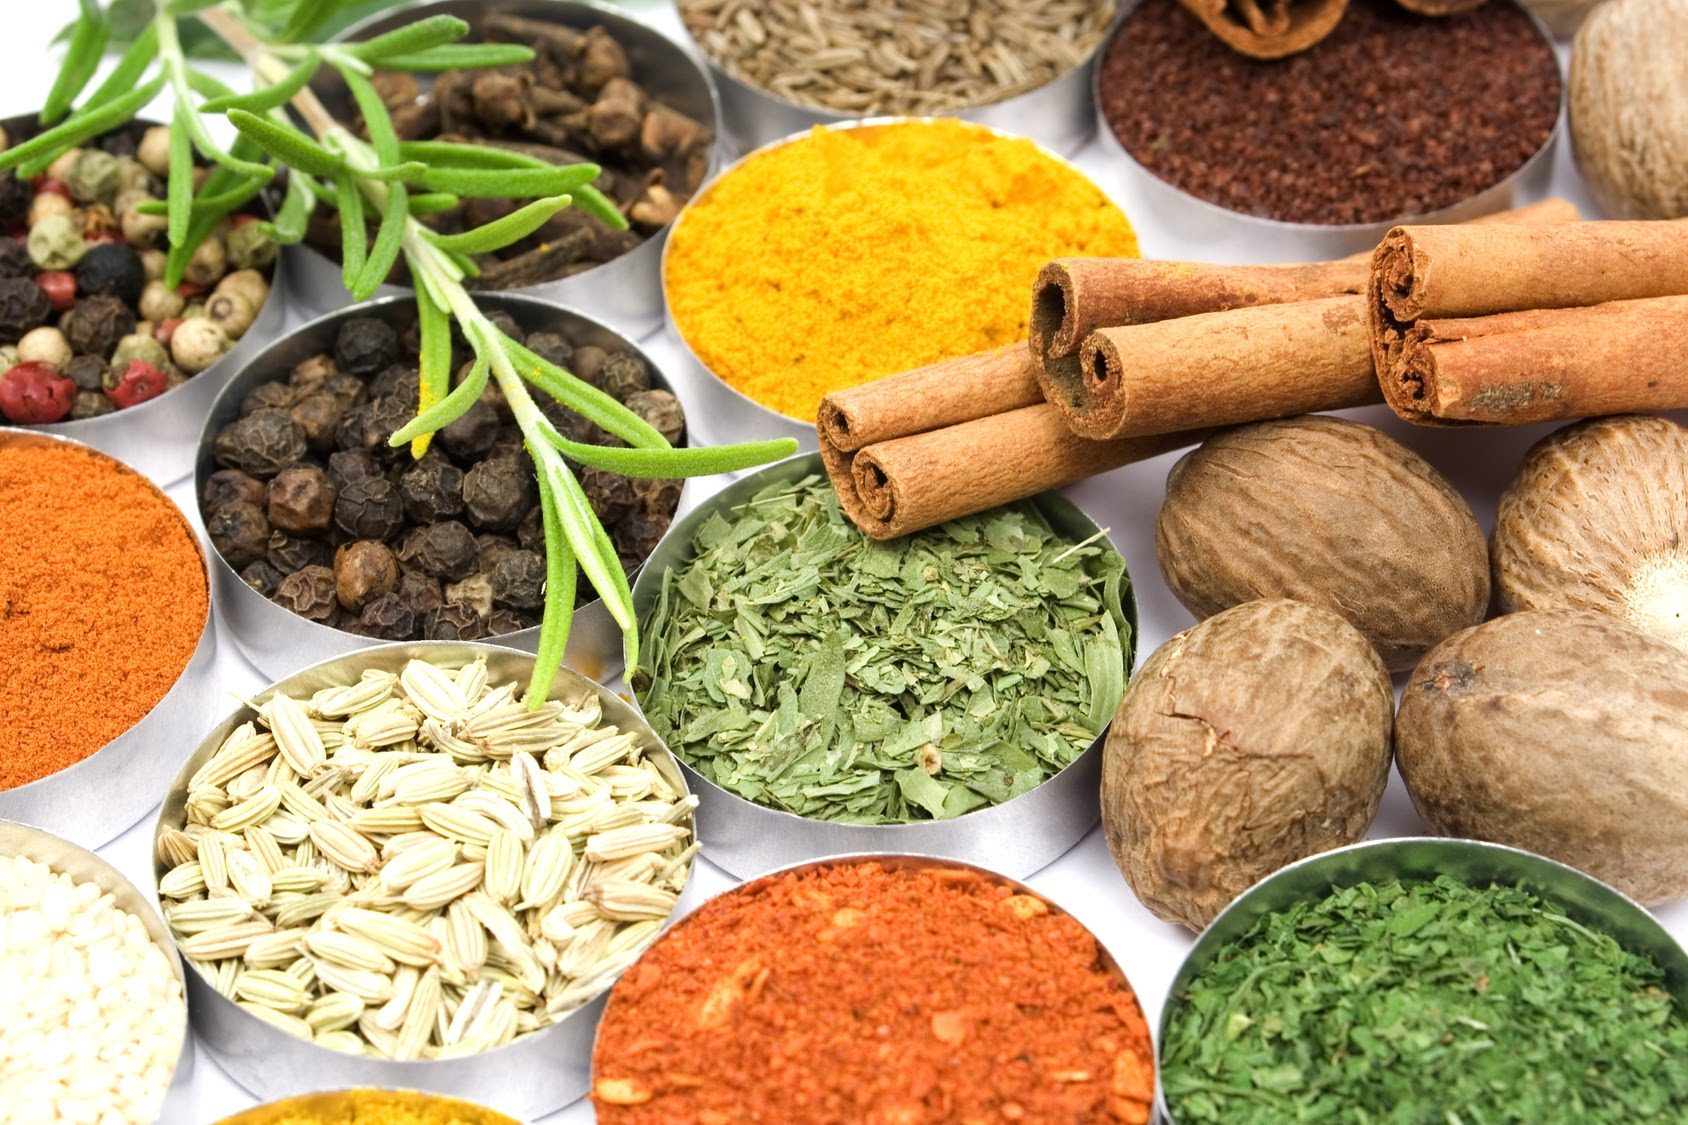 10 Herbs and Spices